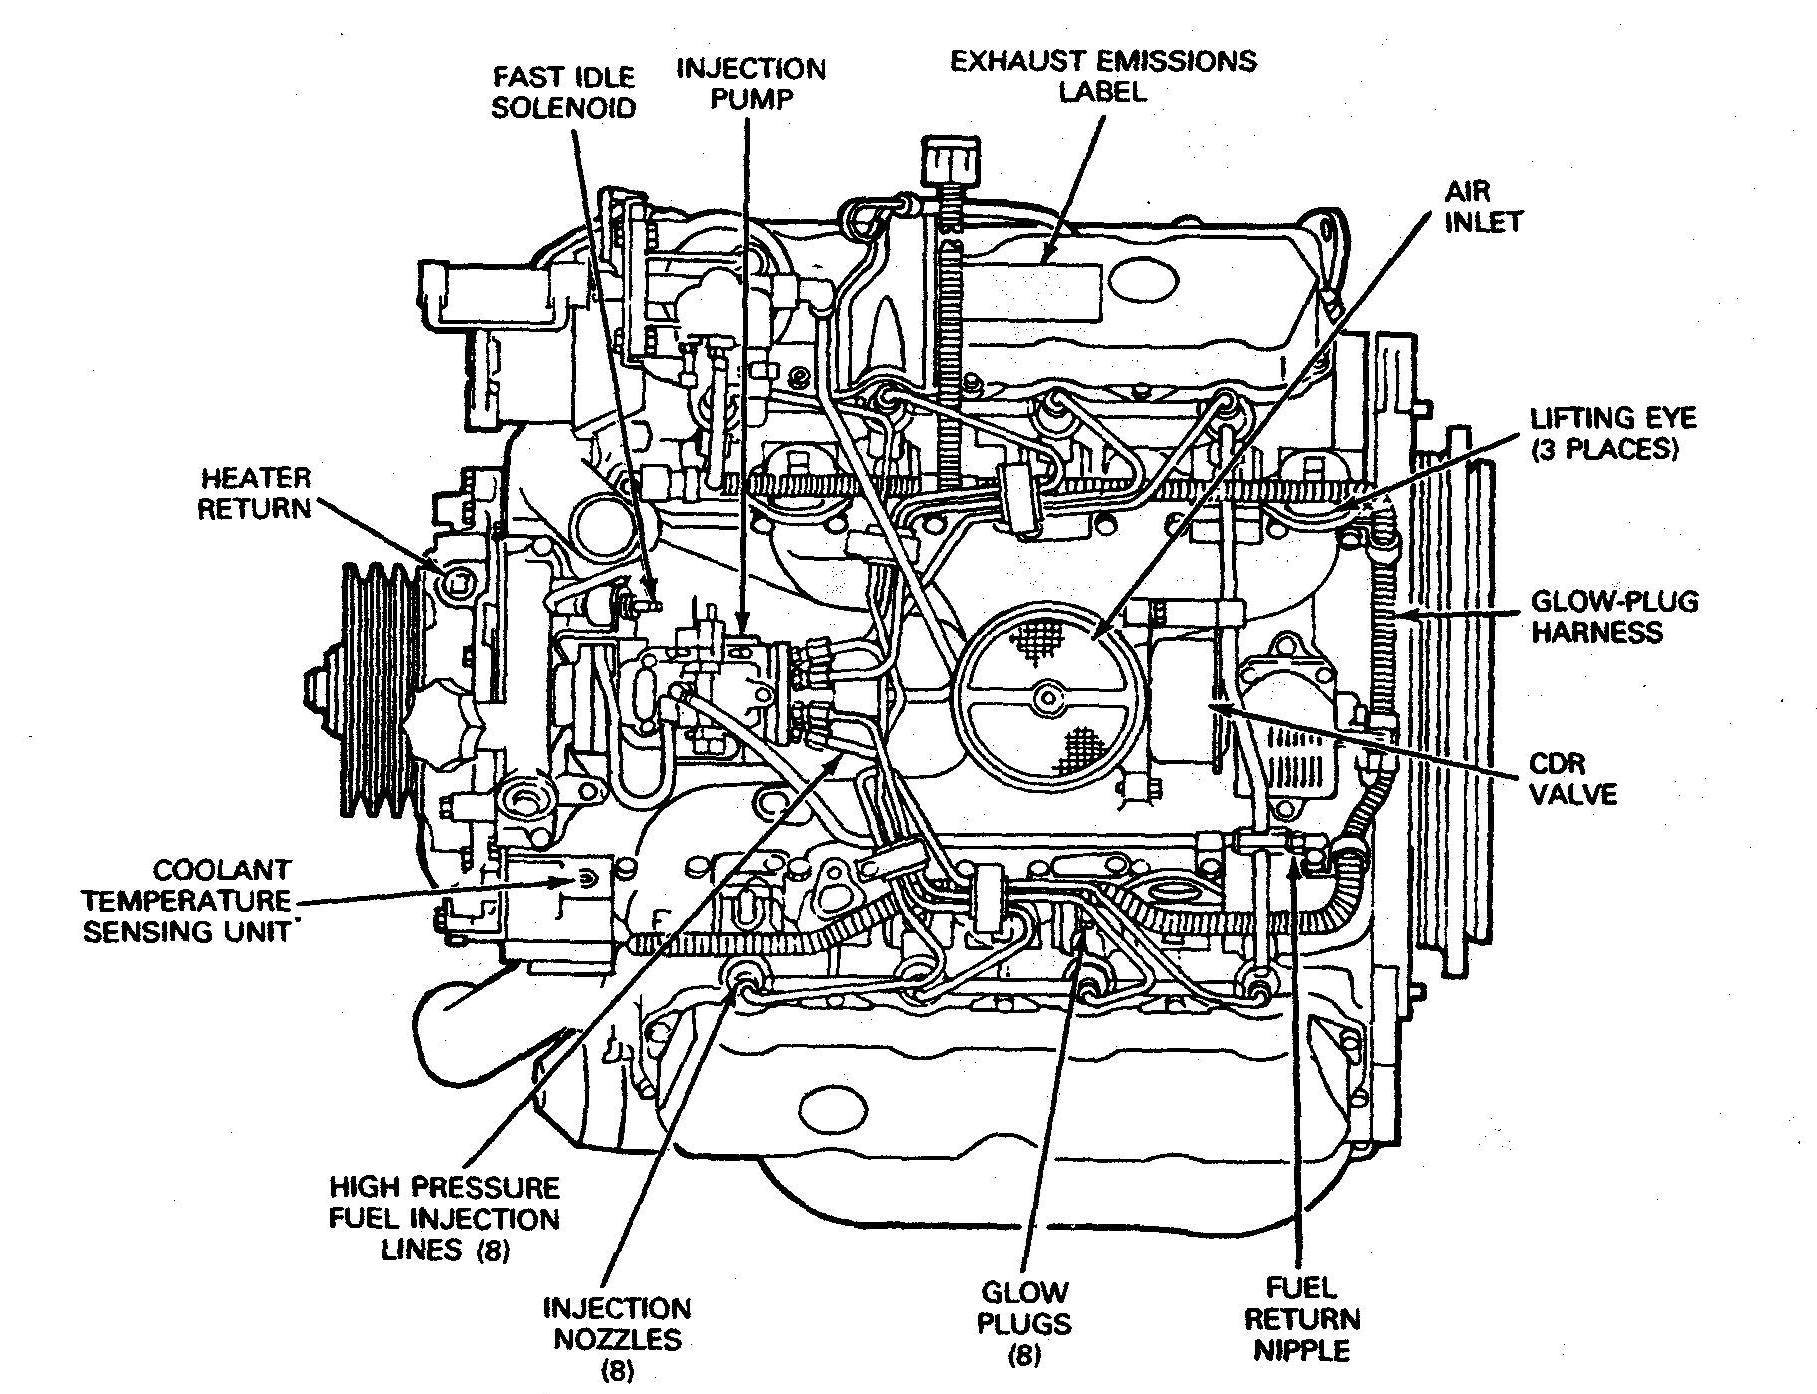 hight resolution of engine and jet drive 2000 s10 2 2 engine diagram 2007 gm 5 3 engine diagram